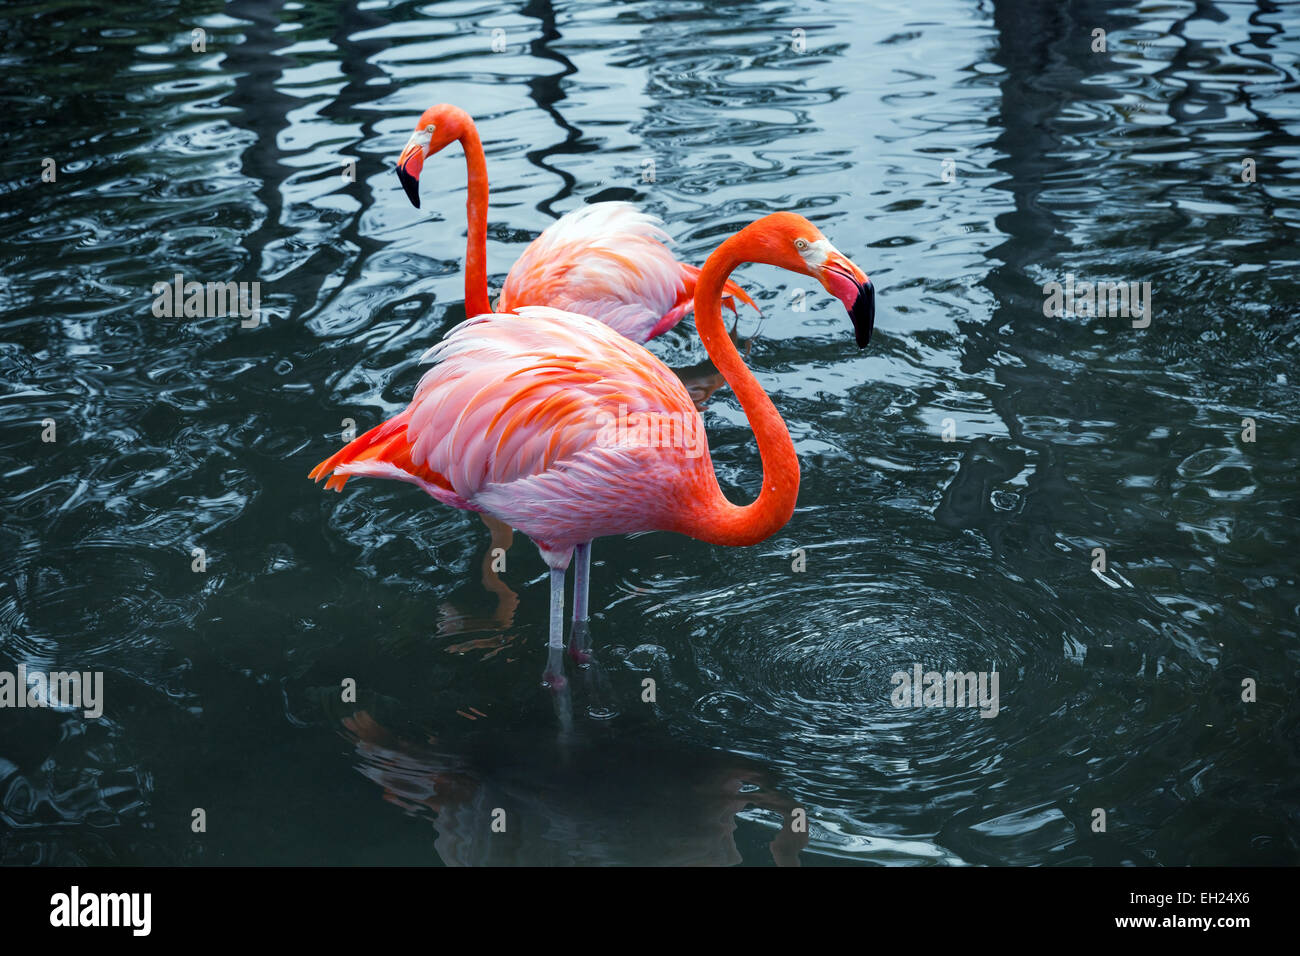 Two pink flamingos standing in the water with reflections. Vintage stylized photo with colorful tonal correction - Stock Image